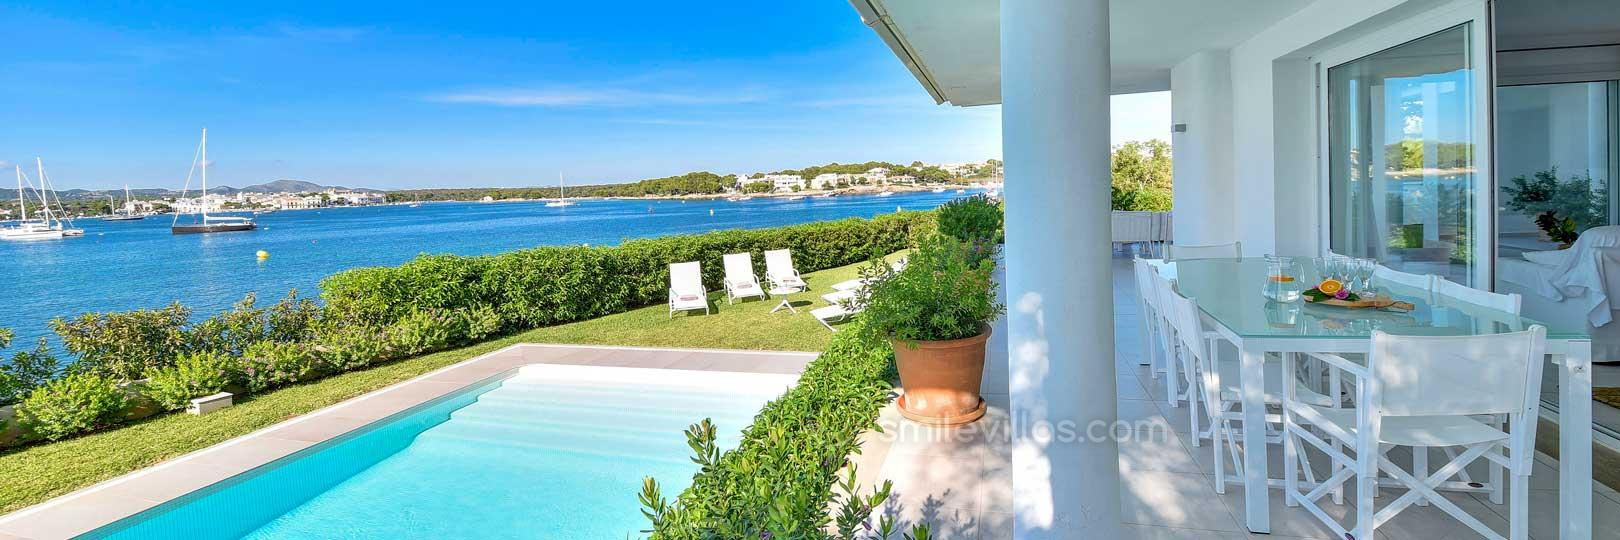 Seafront villa with private pool. Self catering Mallorca.